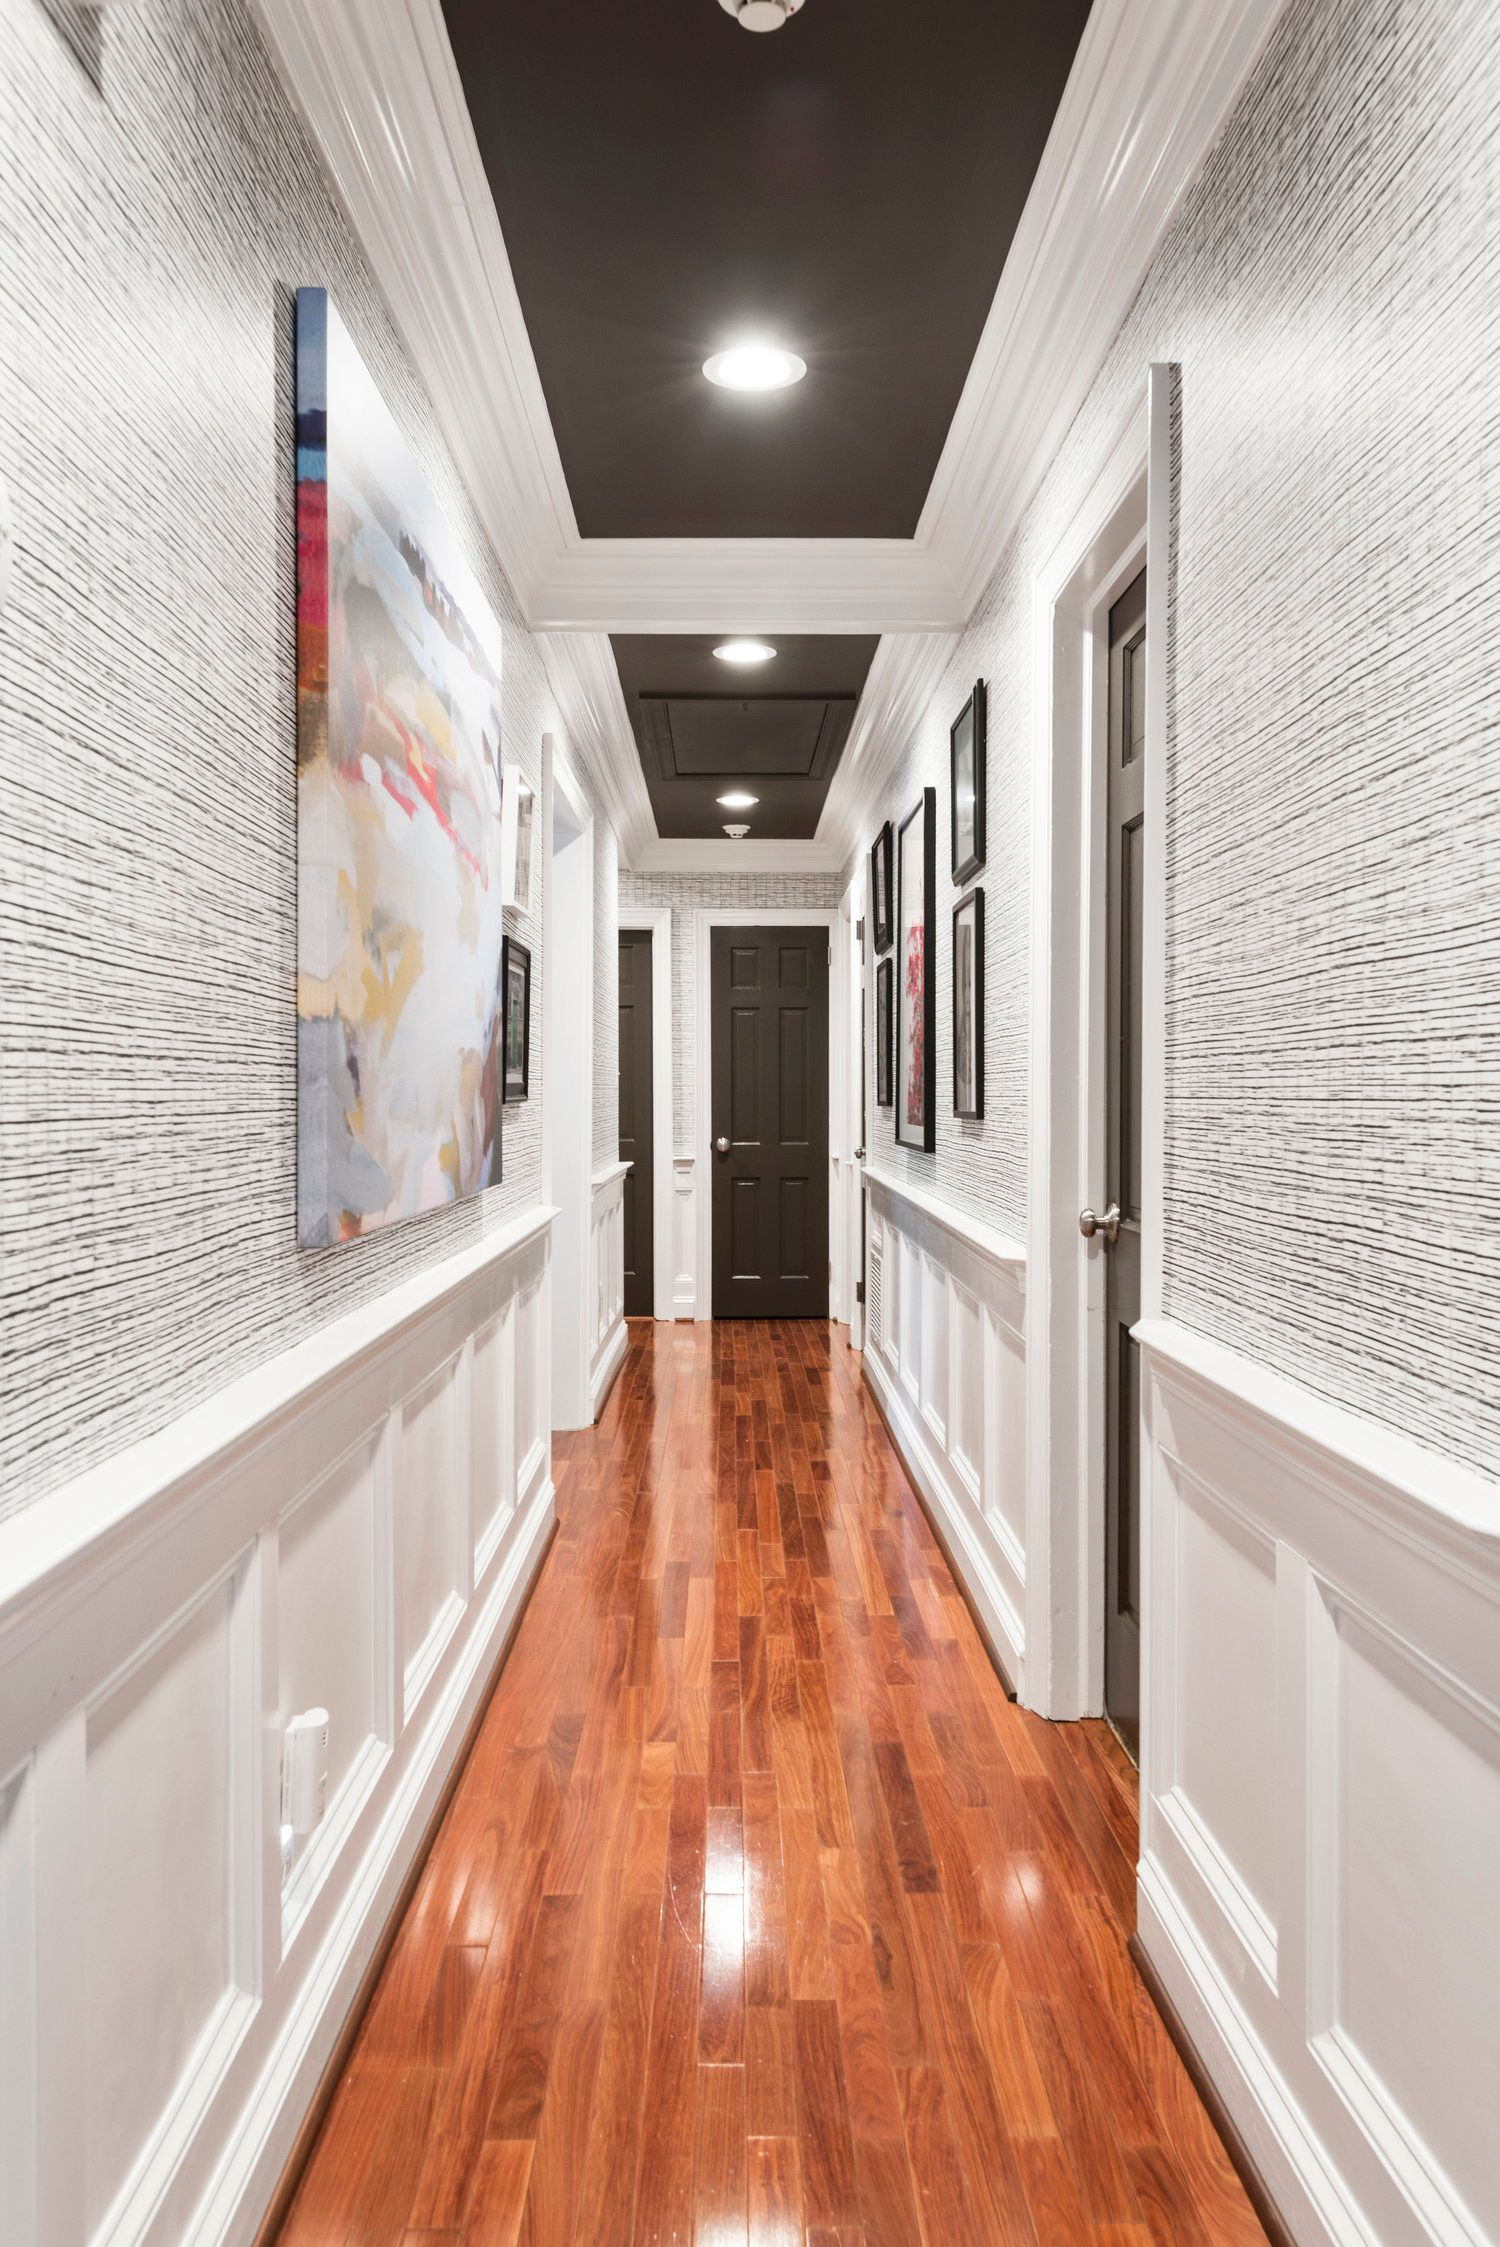 The Grasscloth Guide How To Measure Hang And Install Natural Grasscloth Wallpaper Jana Donohoe Designs Grasscloth Wallpaper Home Design Living Room Hallway Wallpaper